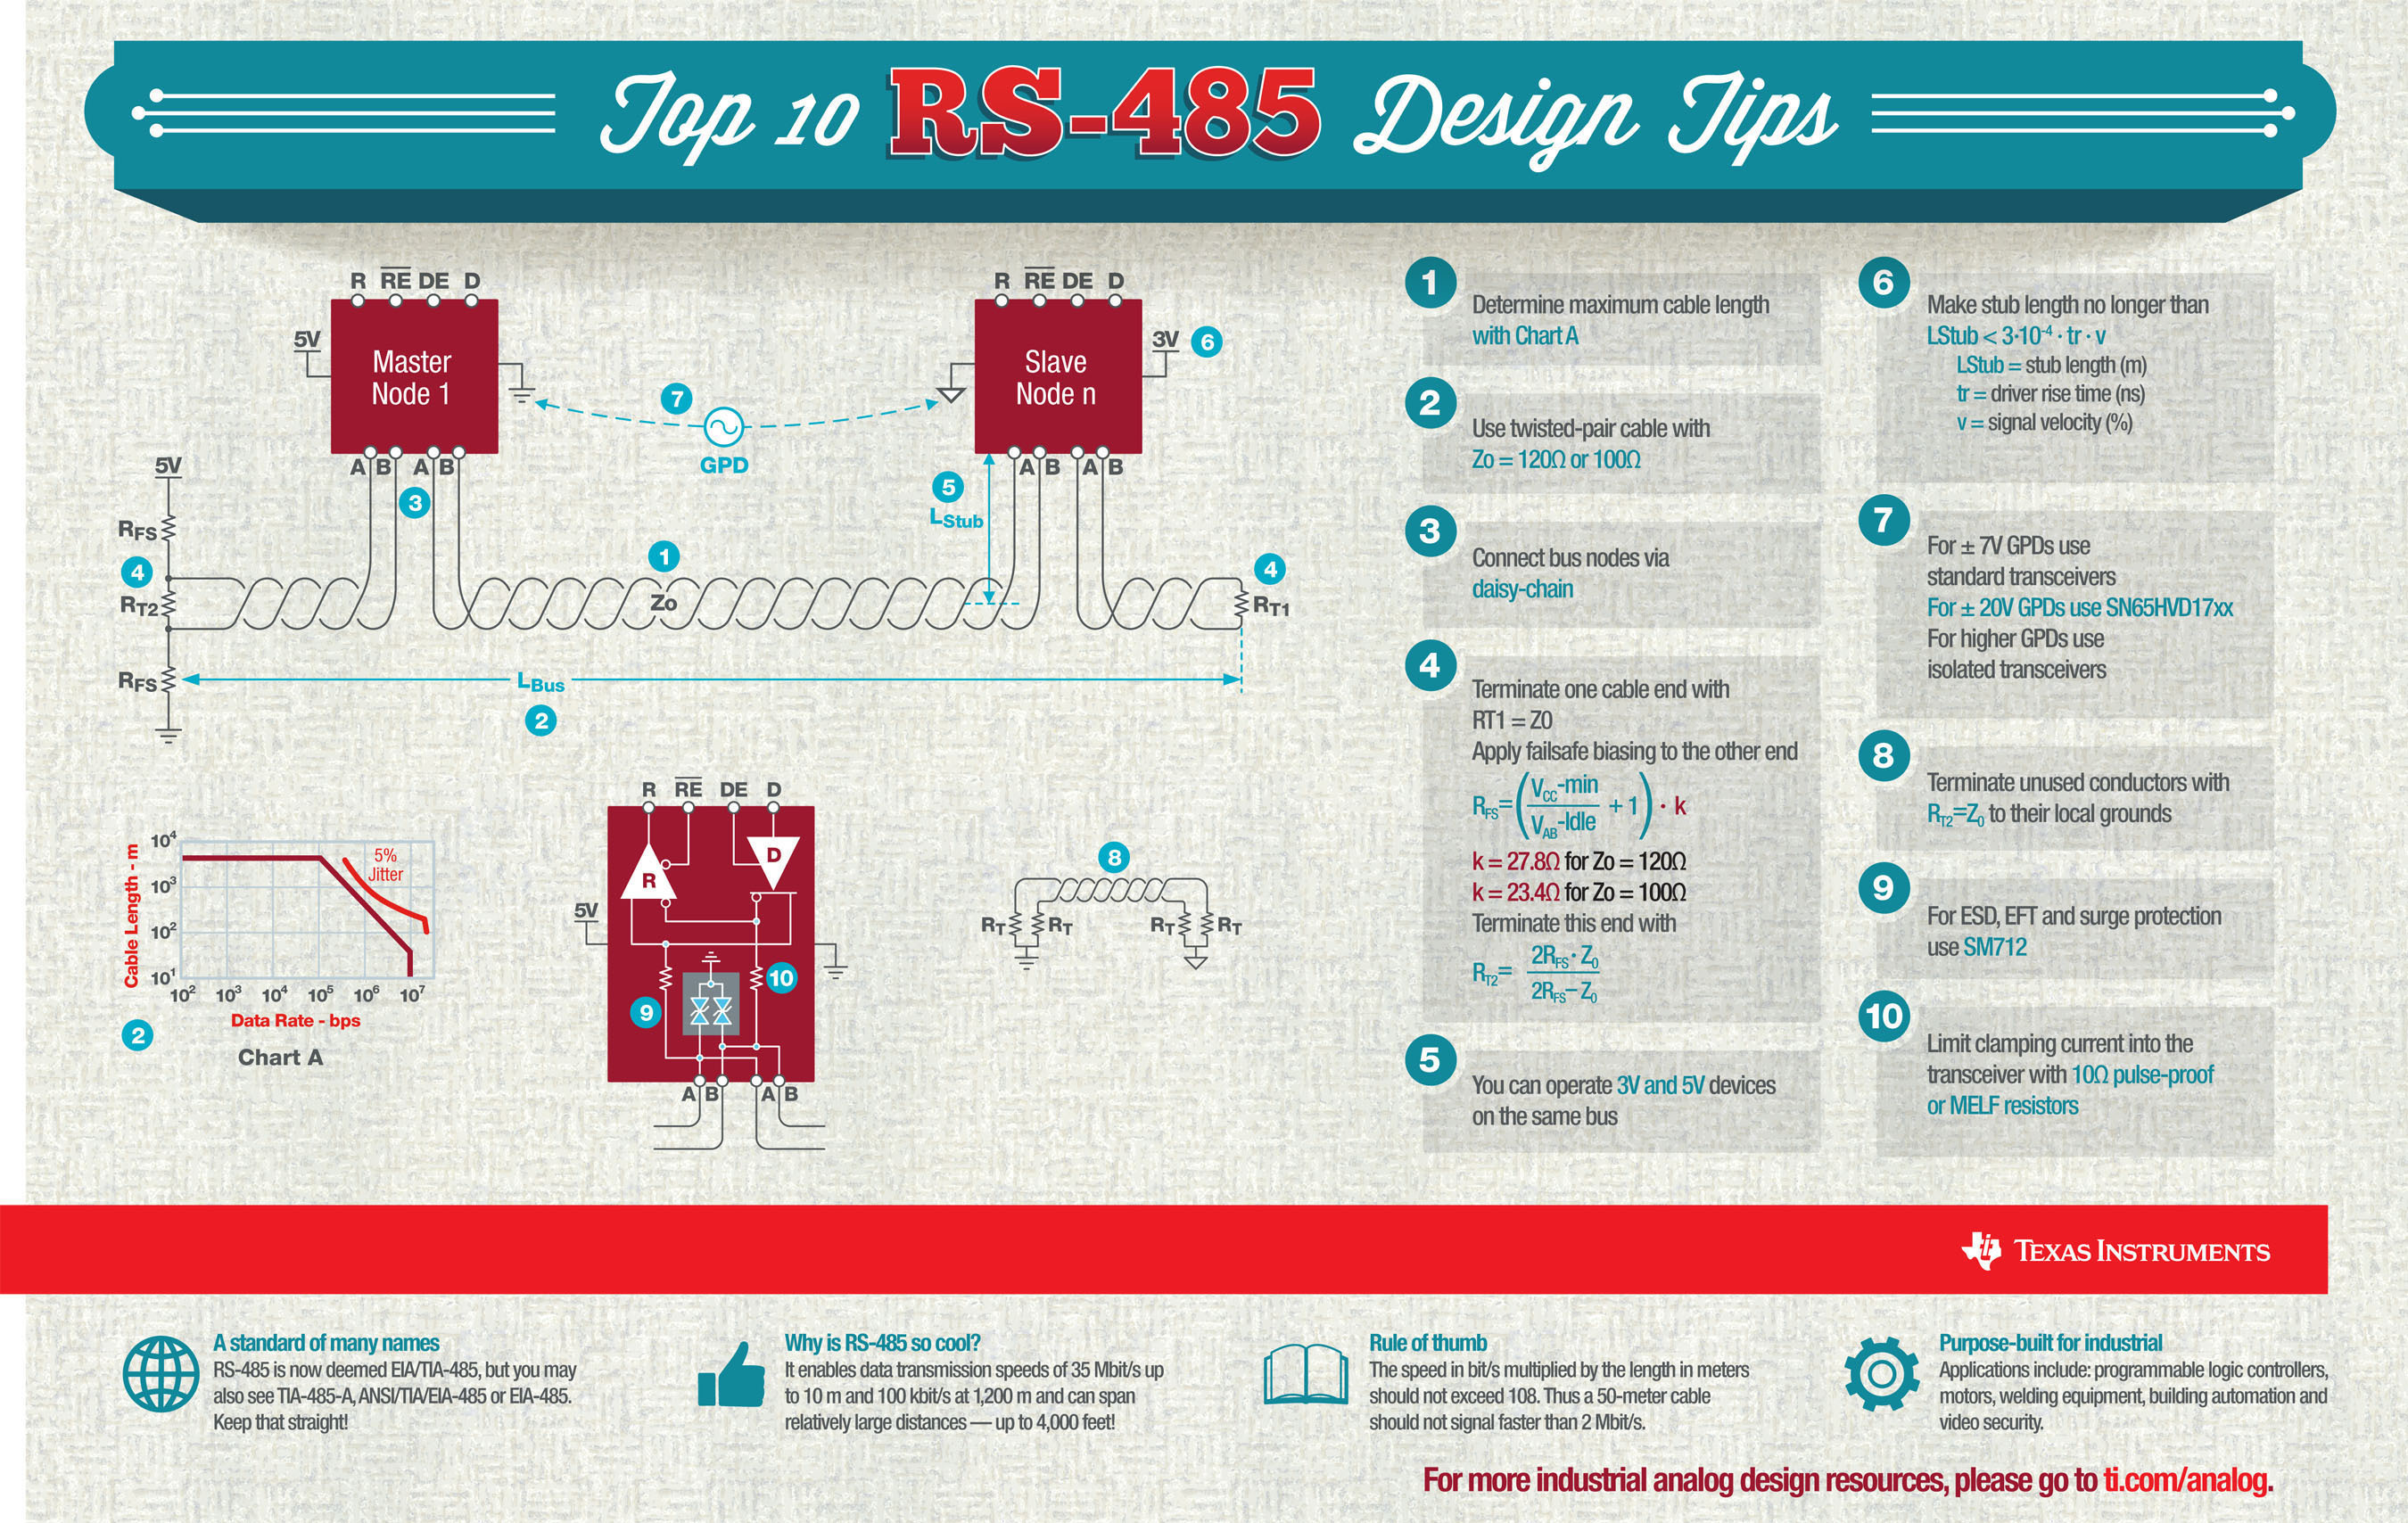 10 tips for RS-485 design [Infographic]